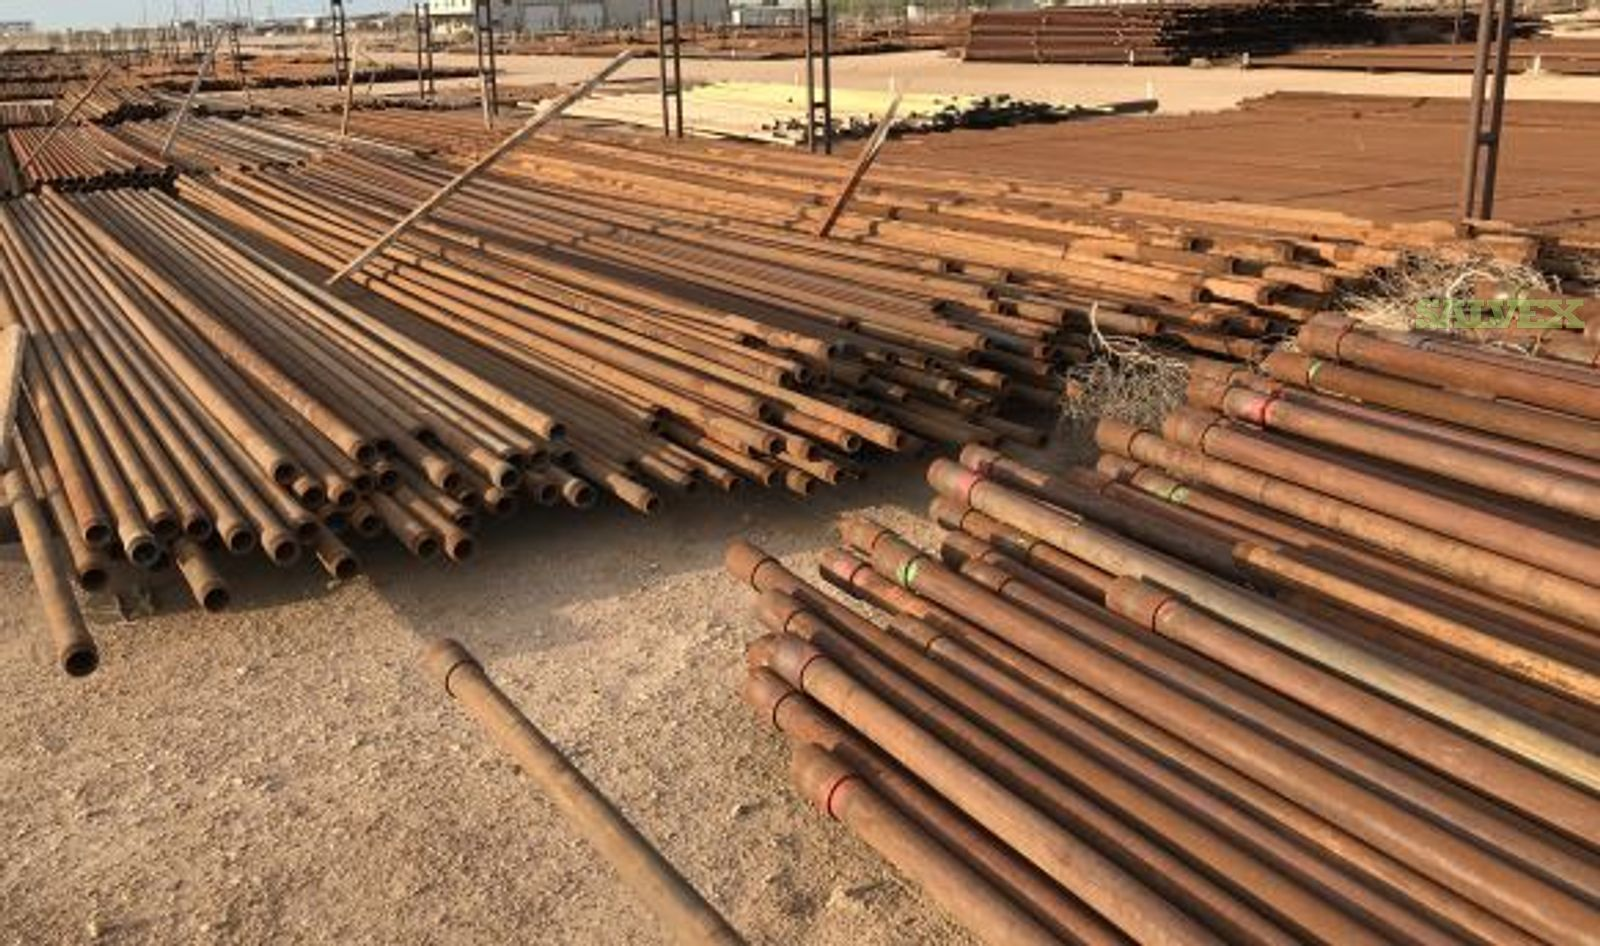 2 3/8 4.60# R2 Structural Tubing (719,220 Feet / 1,501 Metric Tons)